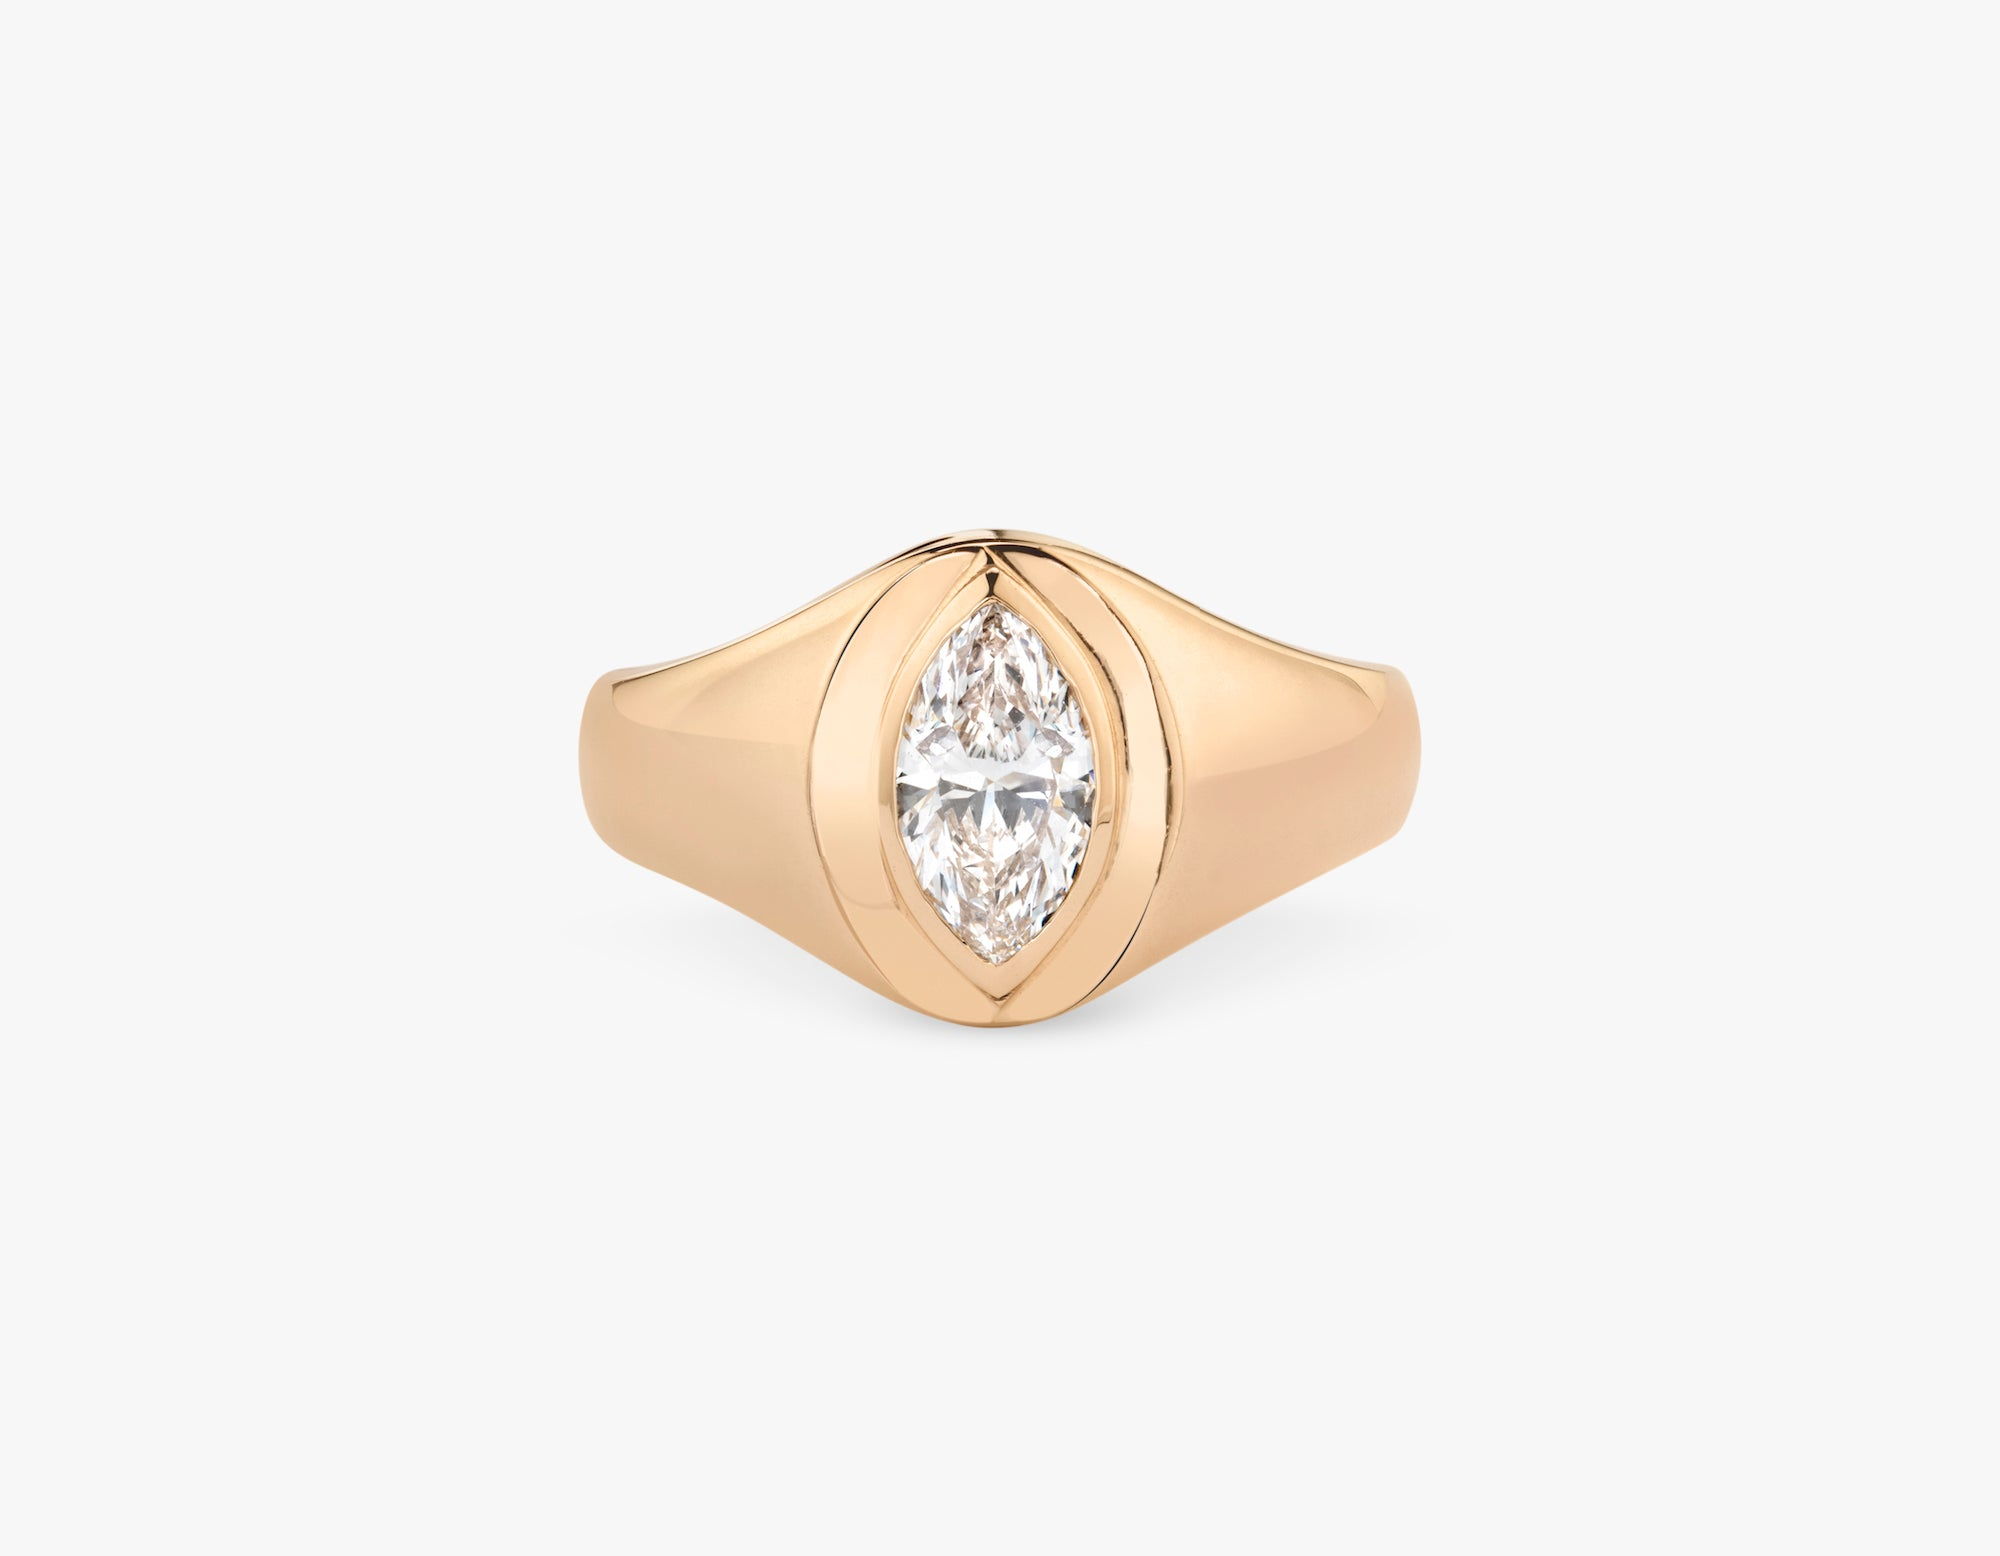 Vrai 14k solid gold classic simple Marquise Diamond Signet Ring, 14K Rose Gold